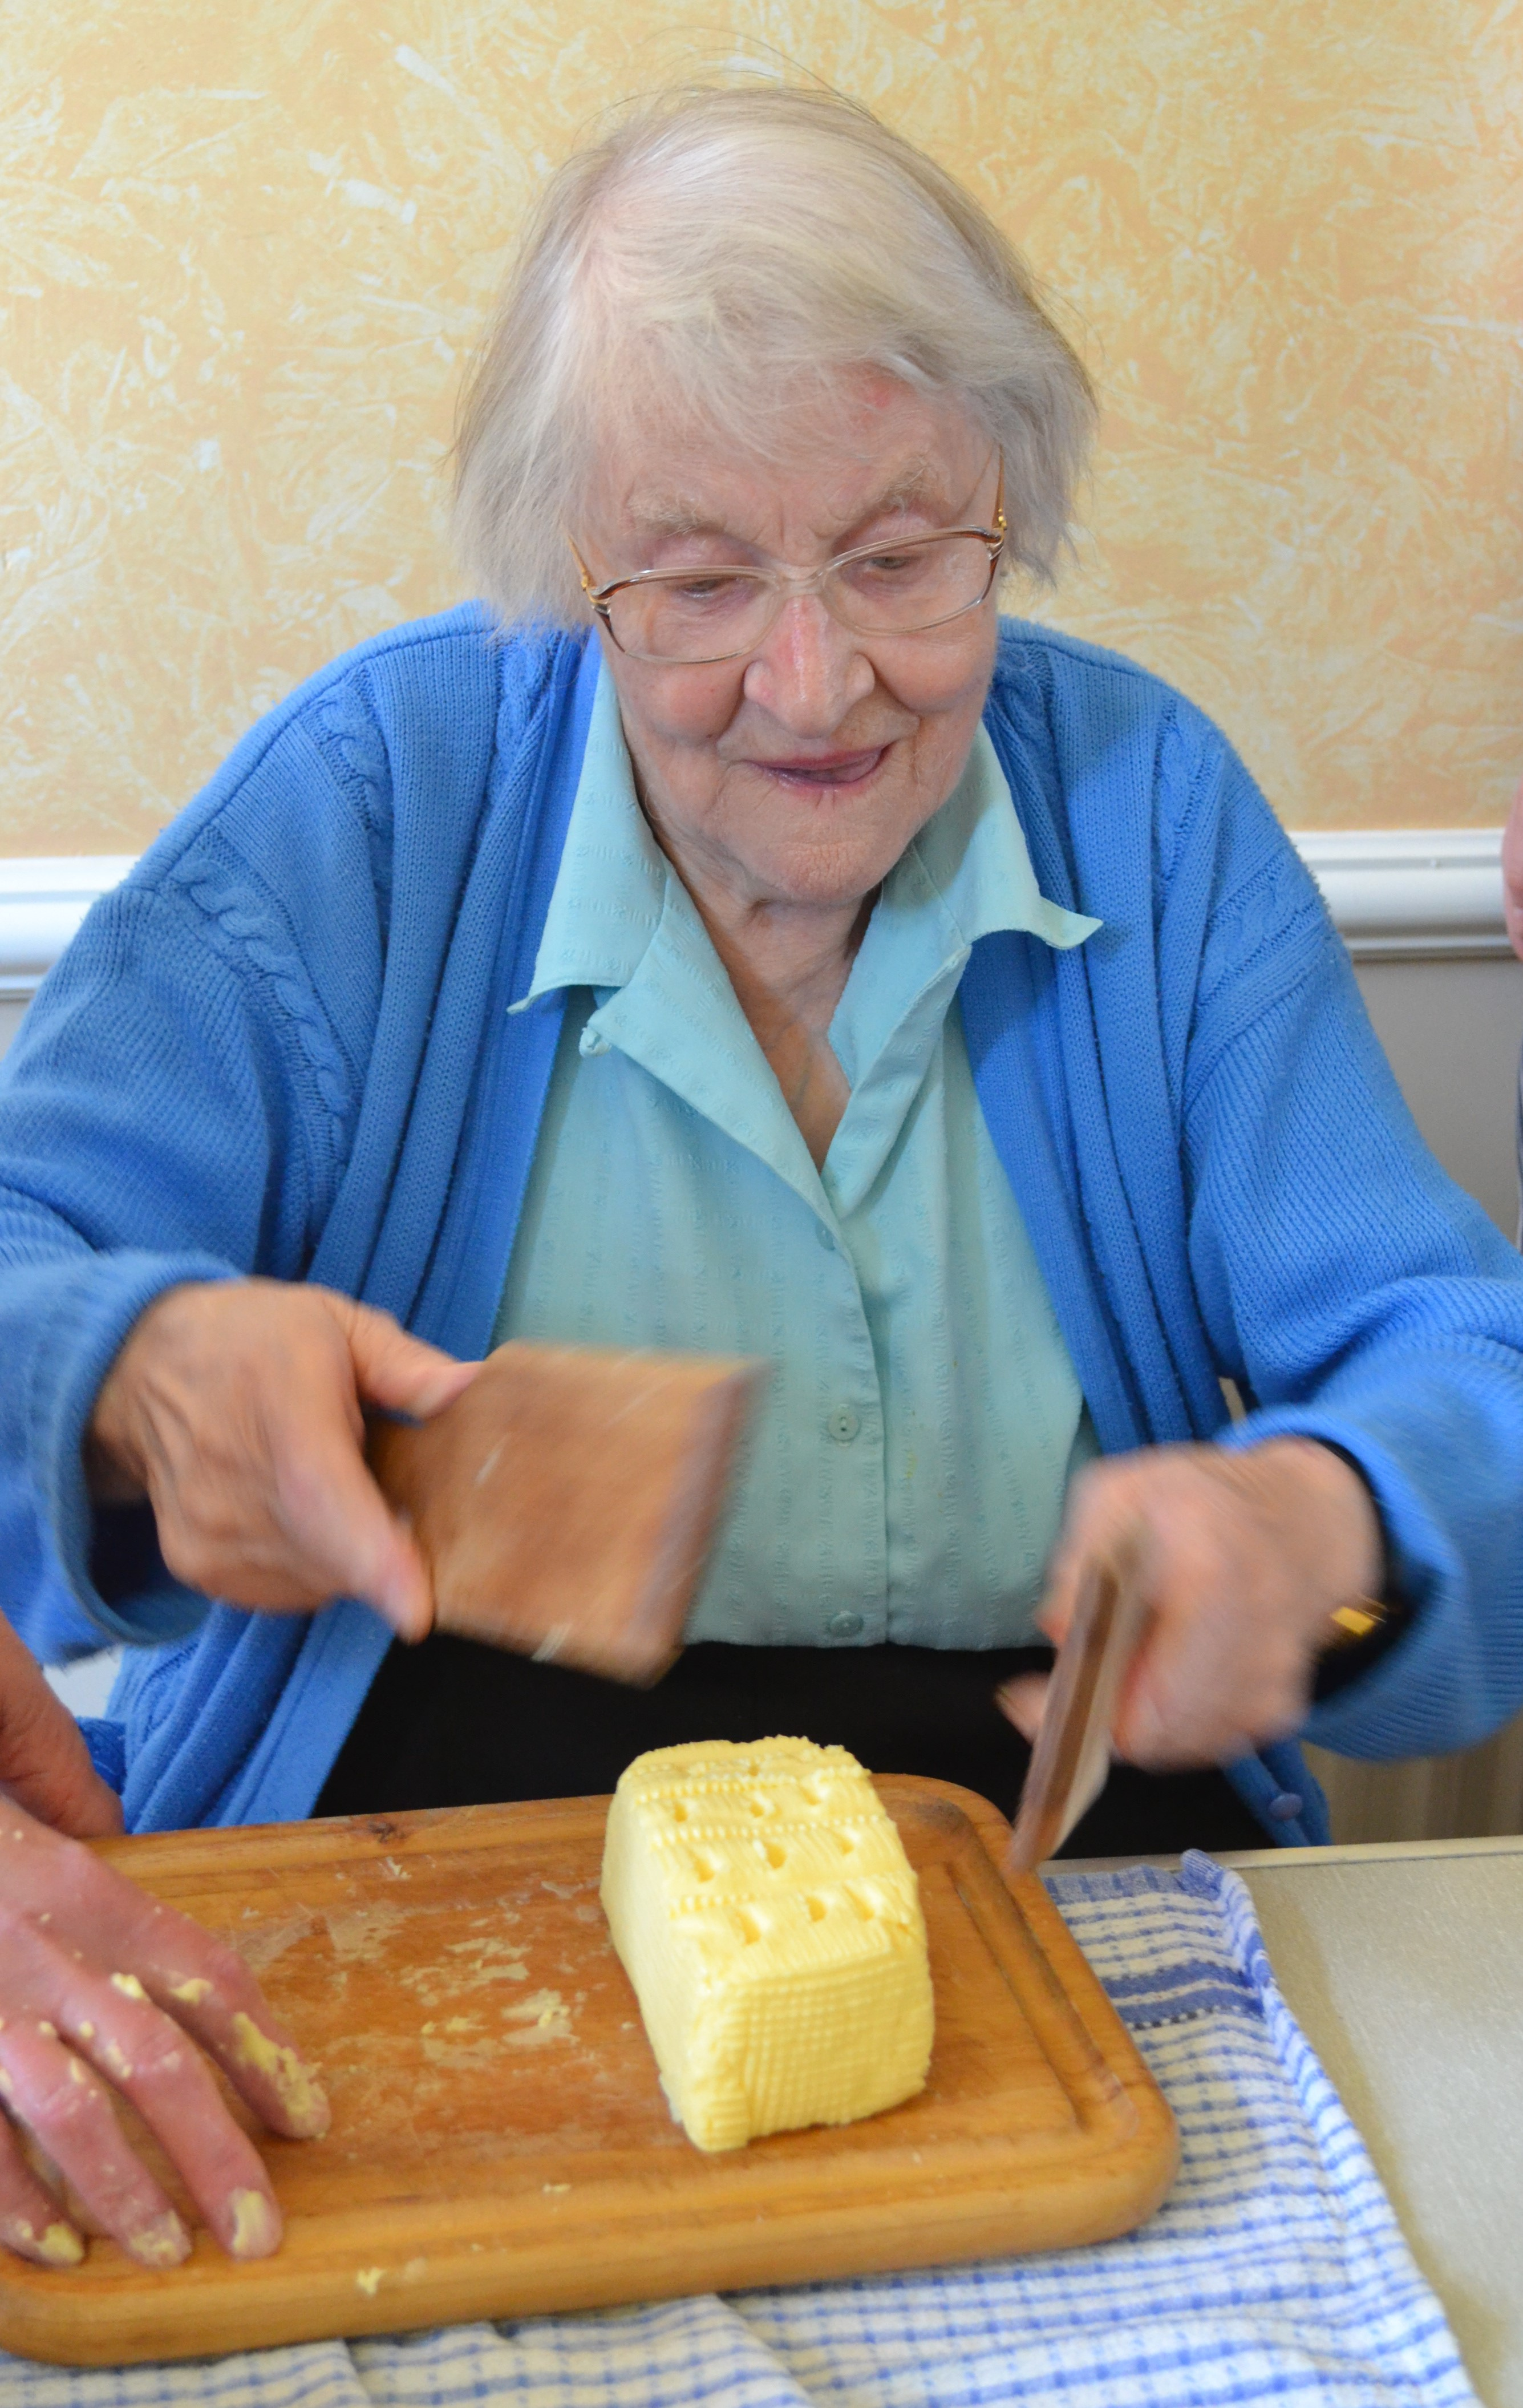 May finishing her personal pattern